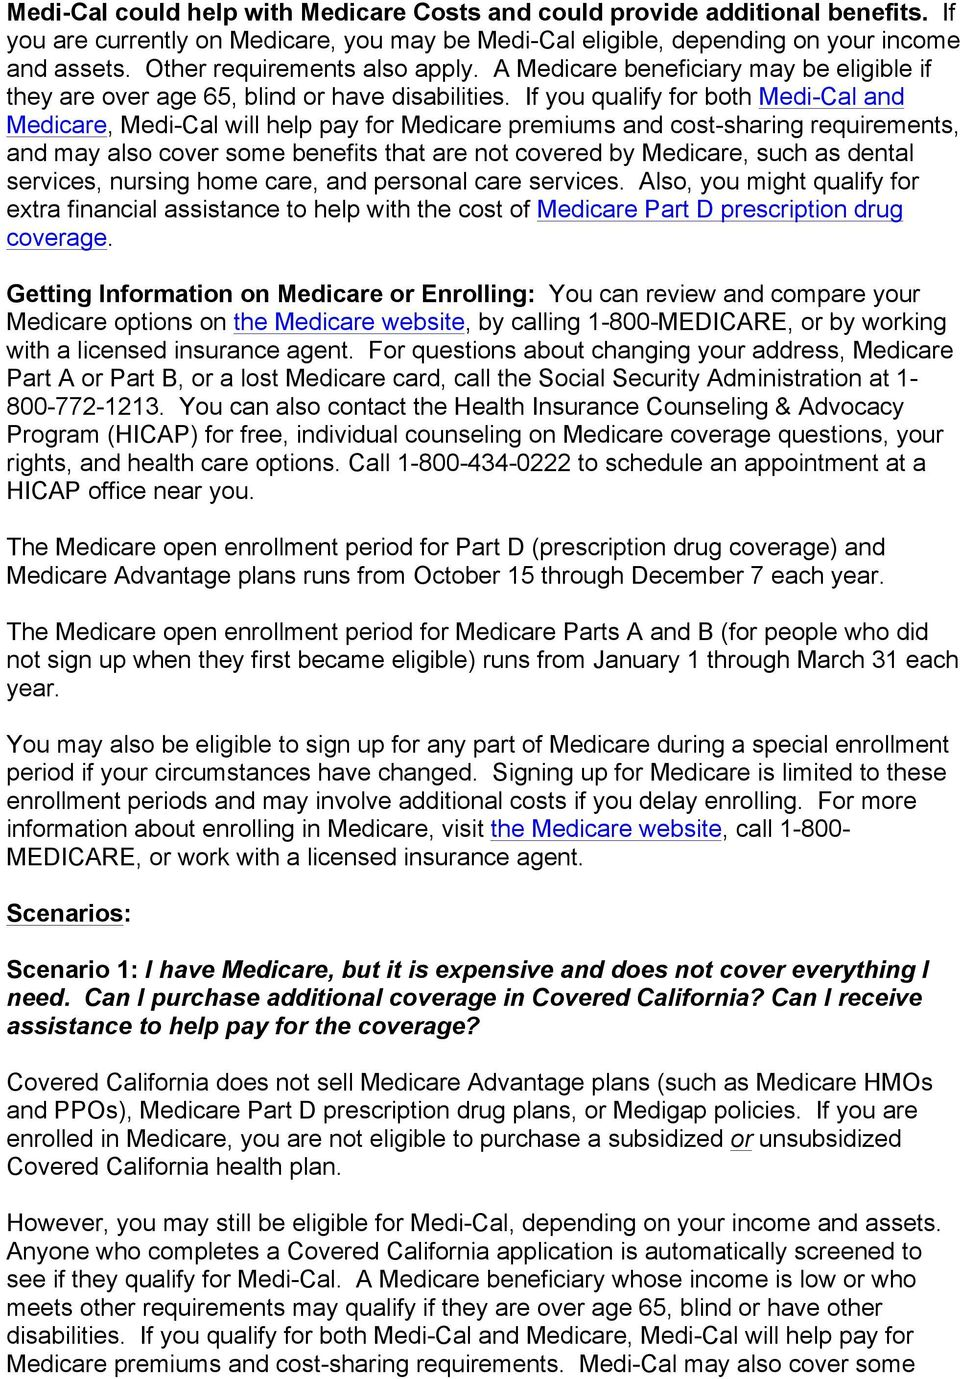 If you qualify for both Medi-Cal and Medicare, Medi-Cal will help pay for Medicare premiums and cost-sharing requirements, and may also cover some benefits that are not covered by Medicare, such as